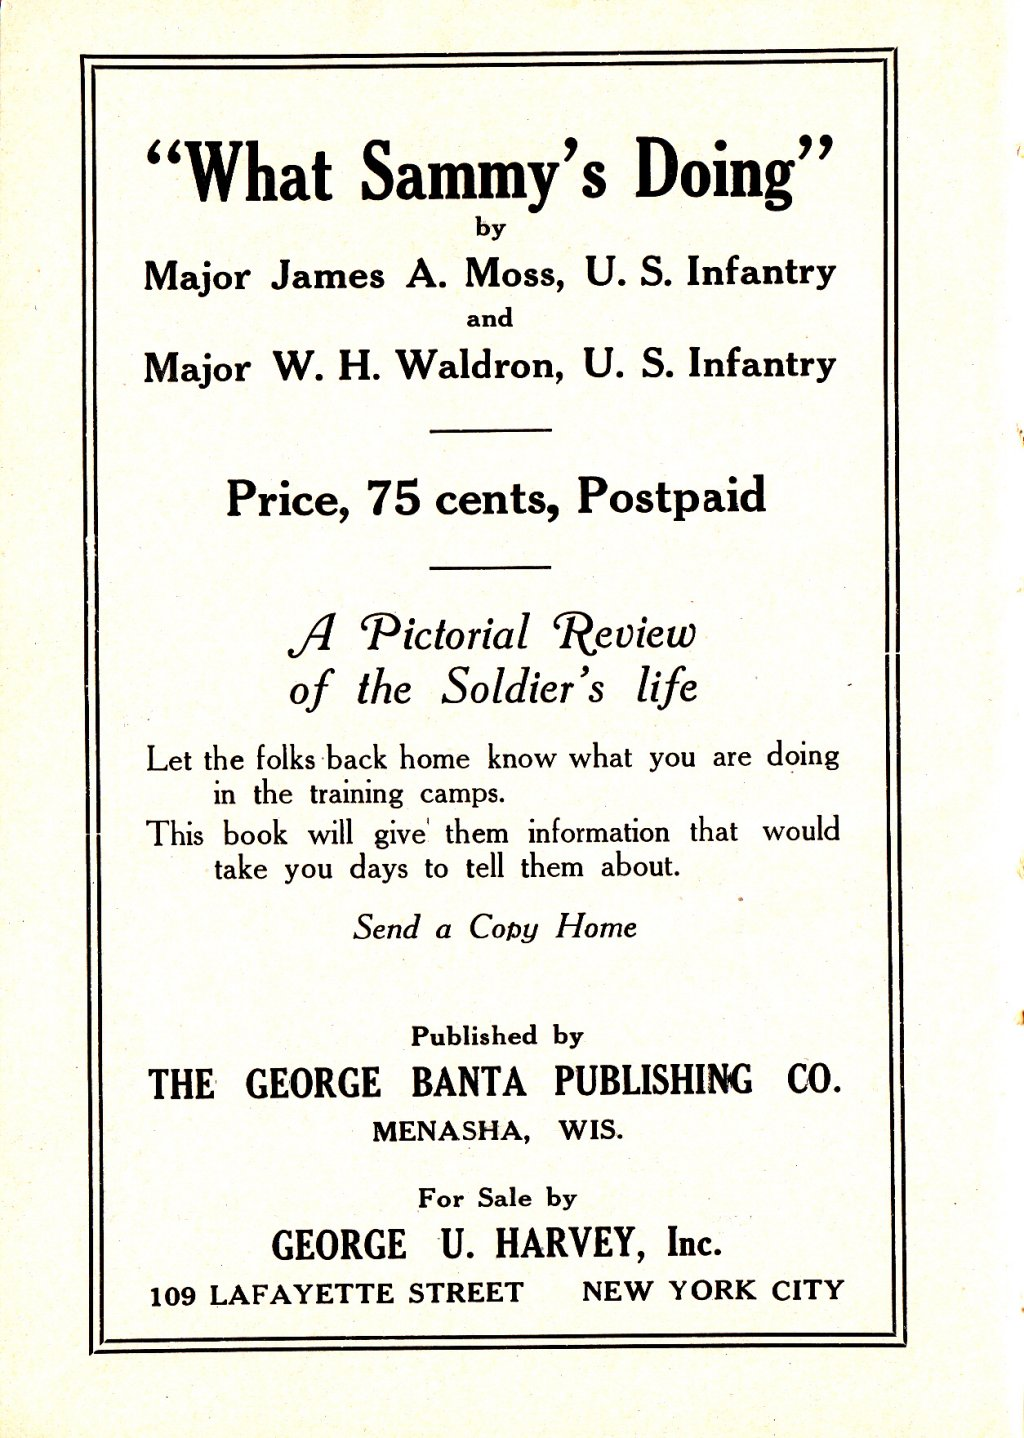 314th Infantry Regiment - Infantry Soldiers Handbook - Waldron - Page 250